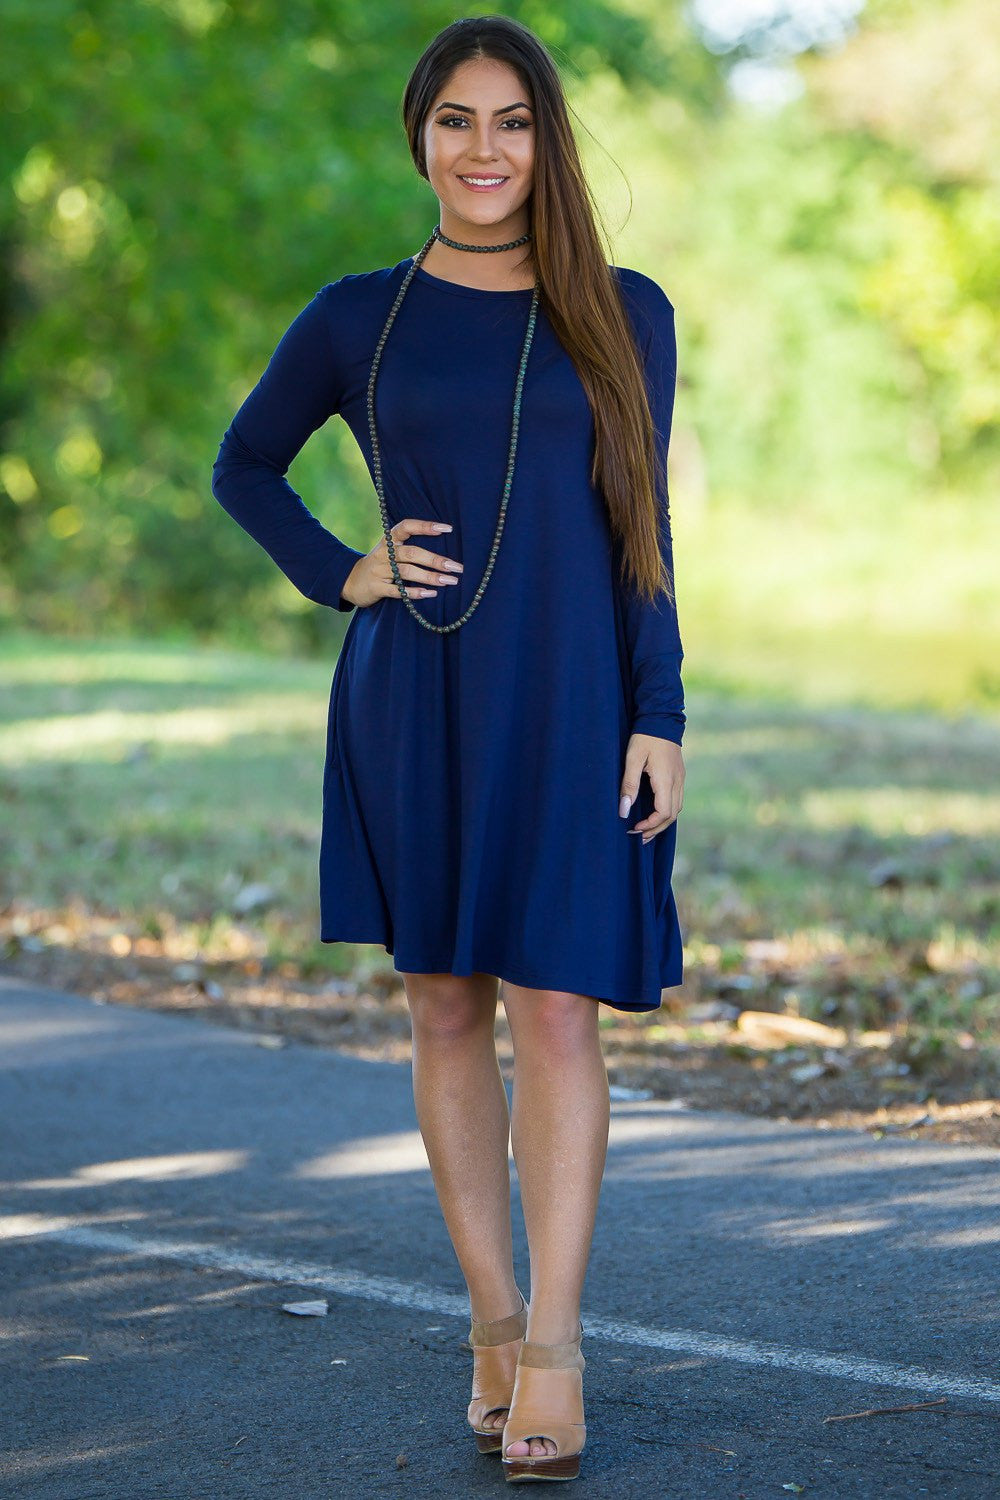 d5f58f7288966 Piko Long Sleeve Swing Dress - Navy - Piko Clothing - 1